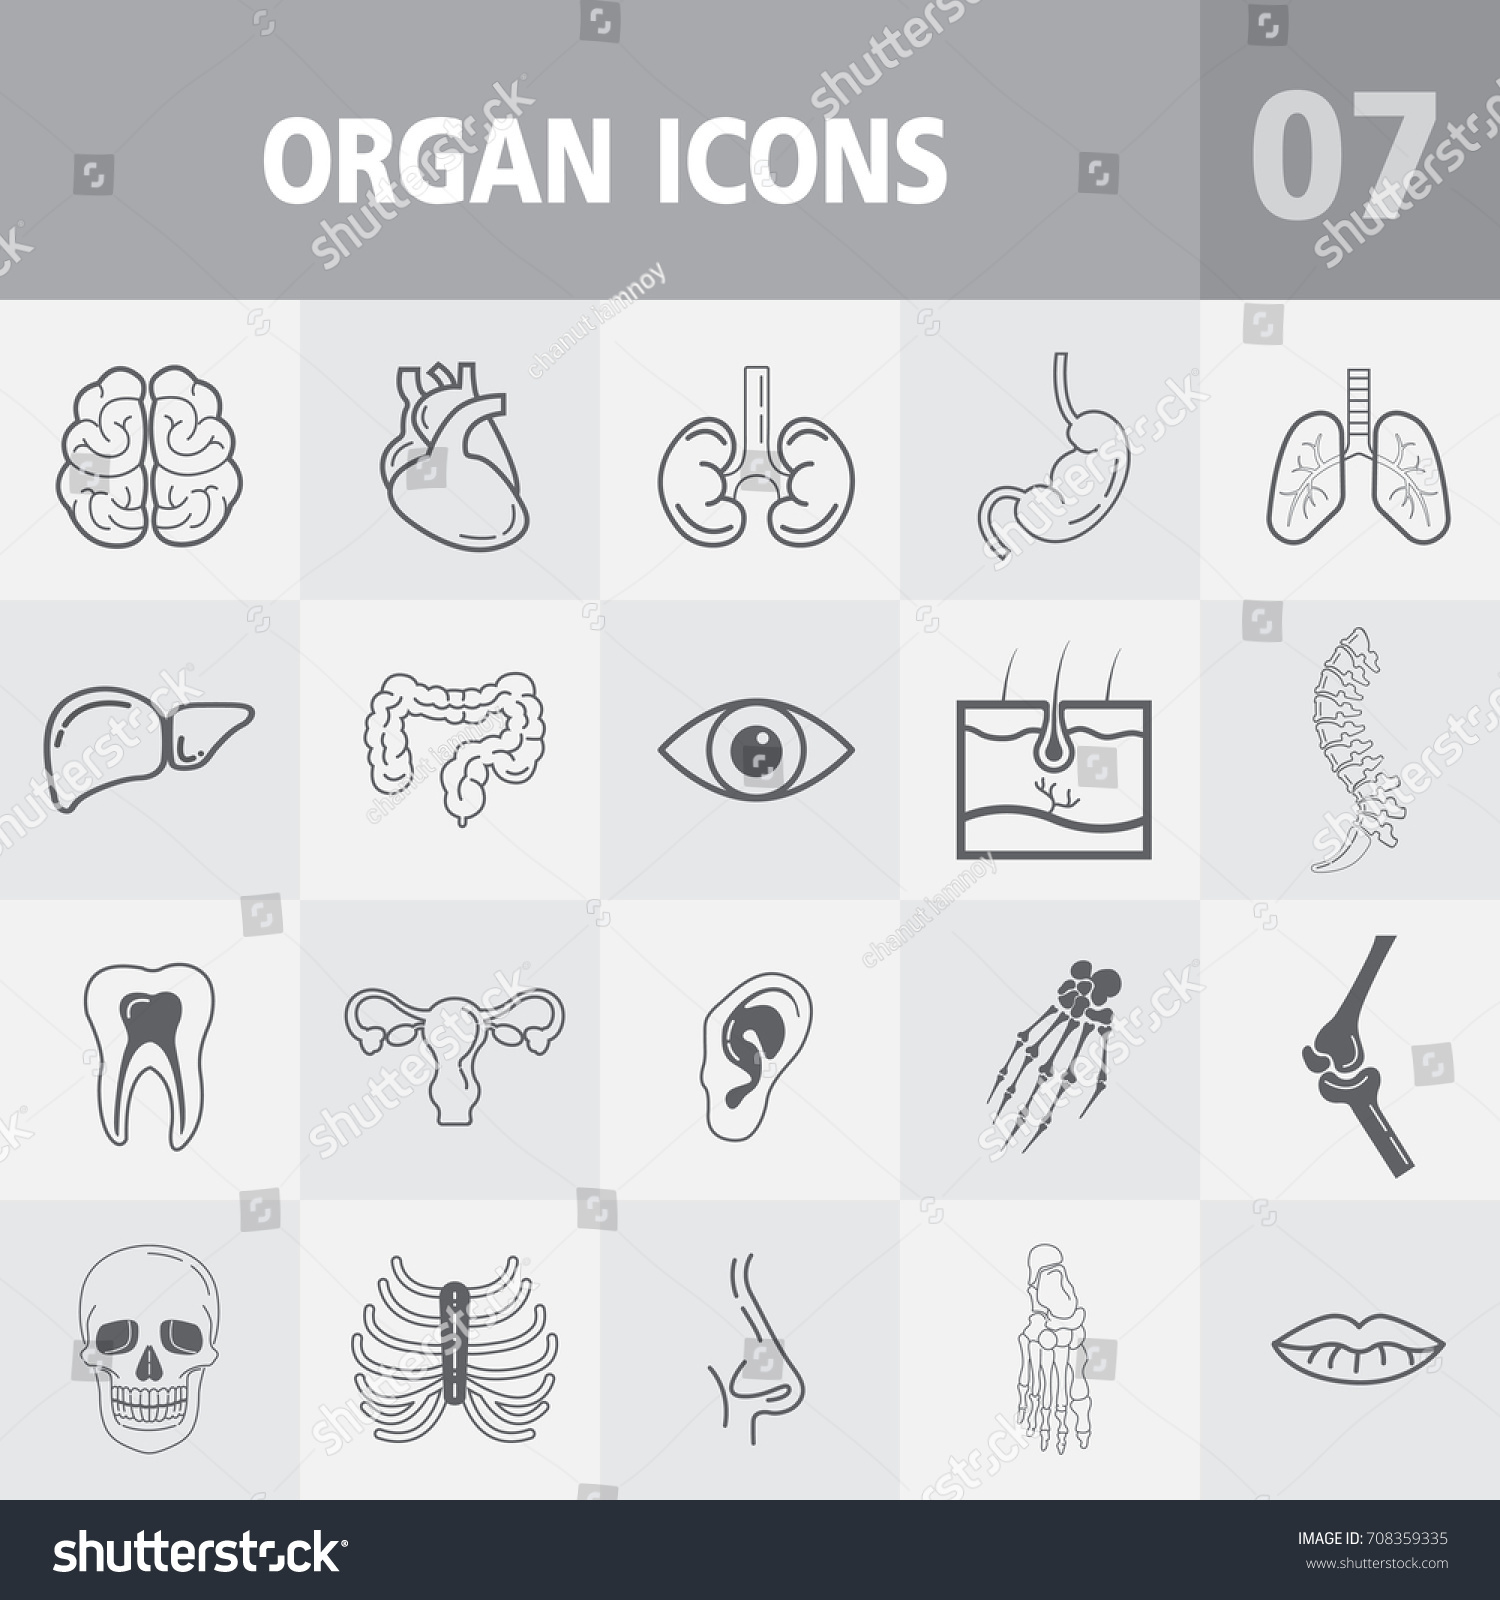 Human Anatomy Outline Icons Vector Icons Set Stock Vector 708359335